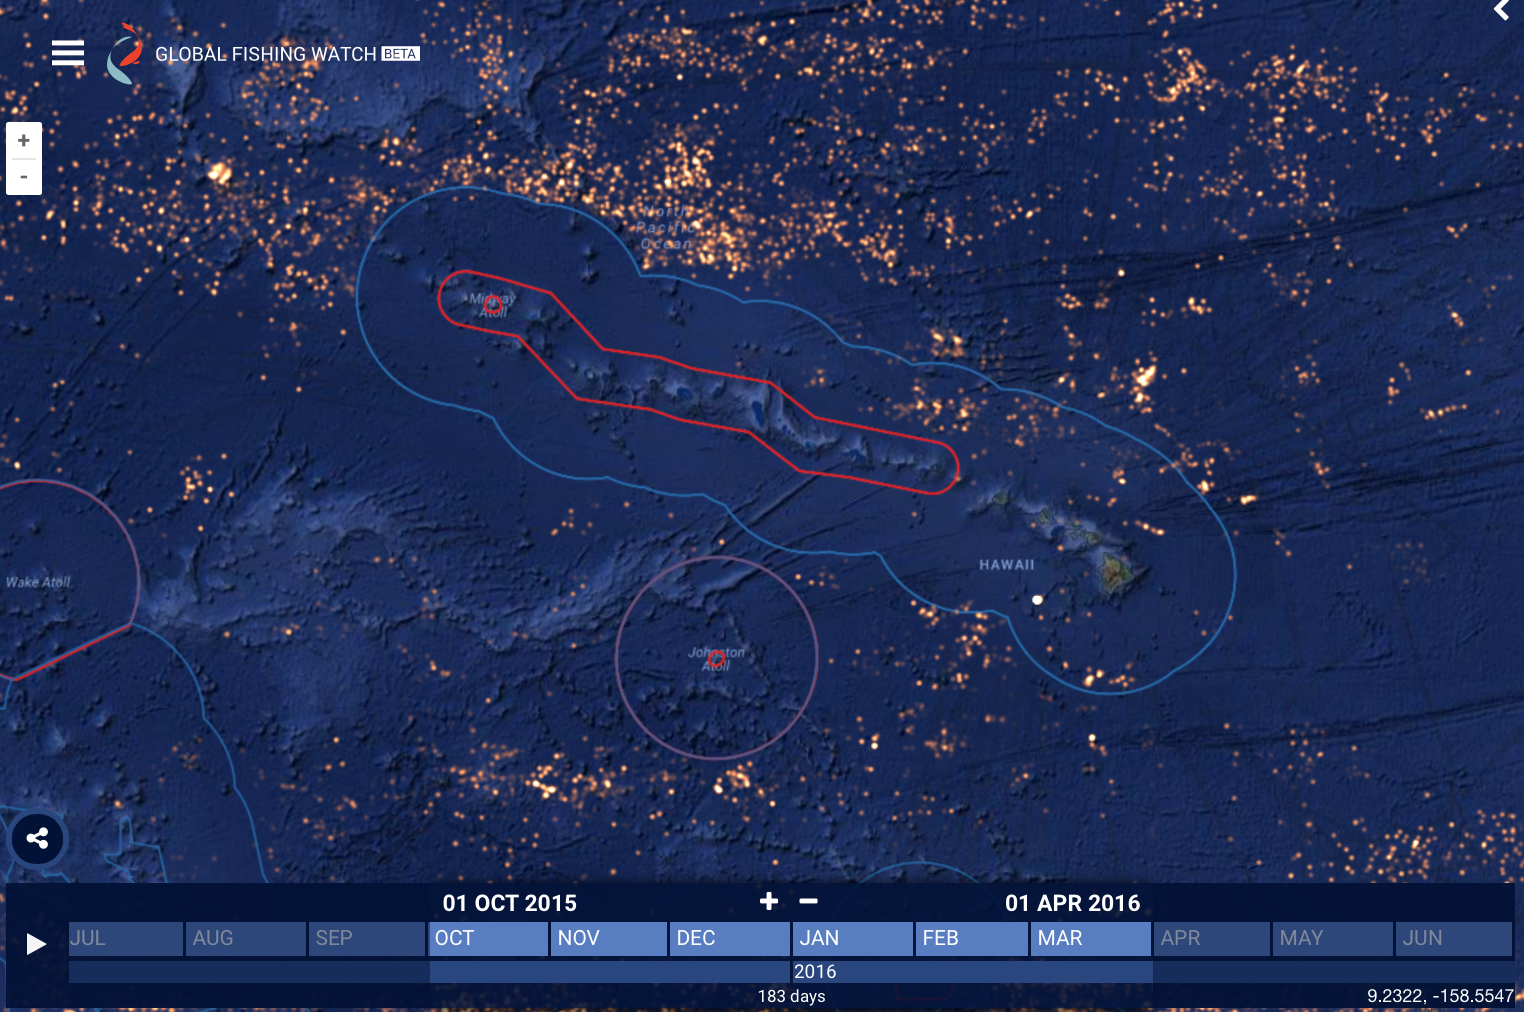 GFW_Hawaii_01102015to01042016.png